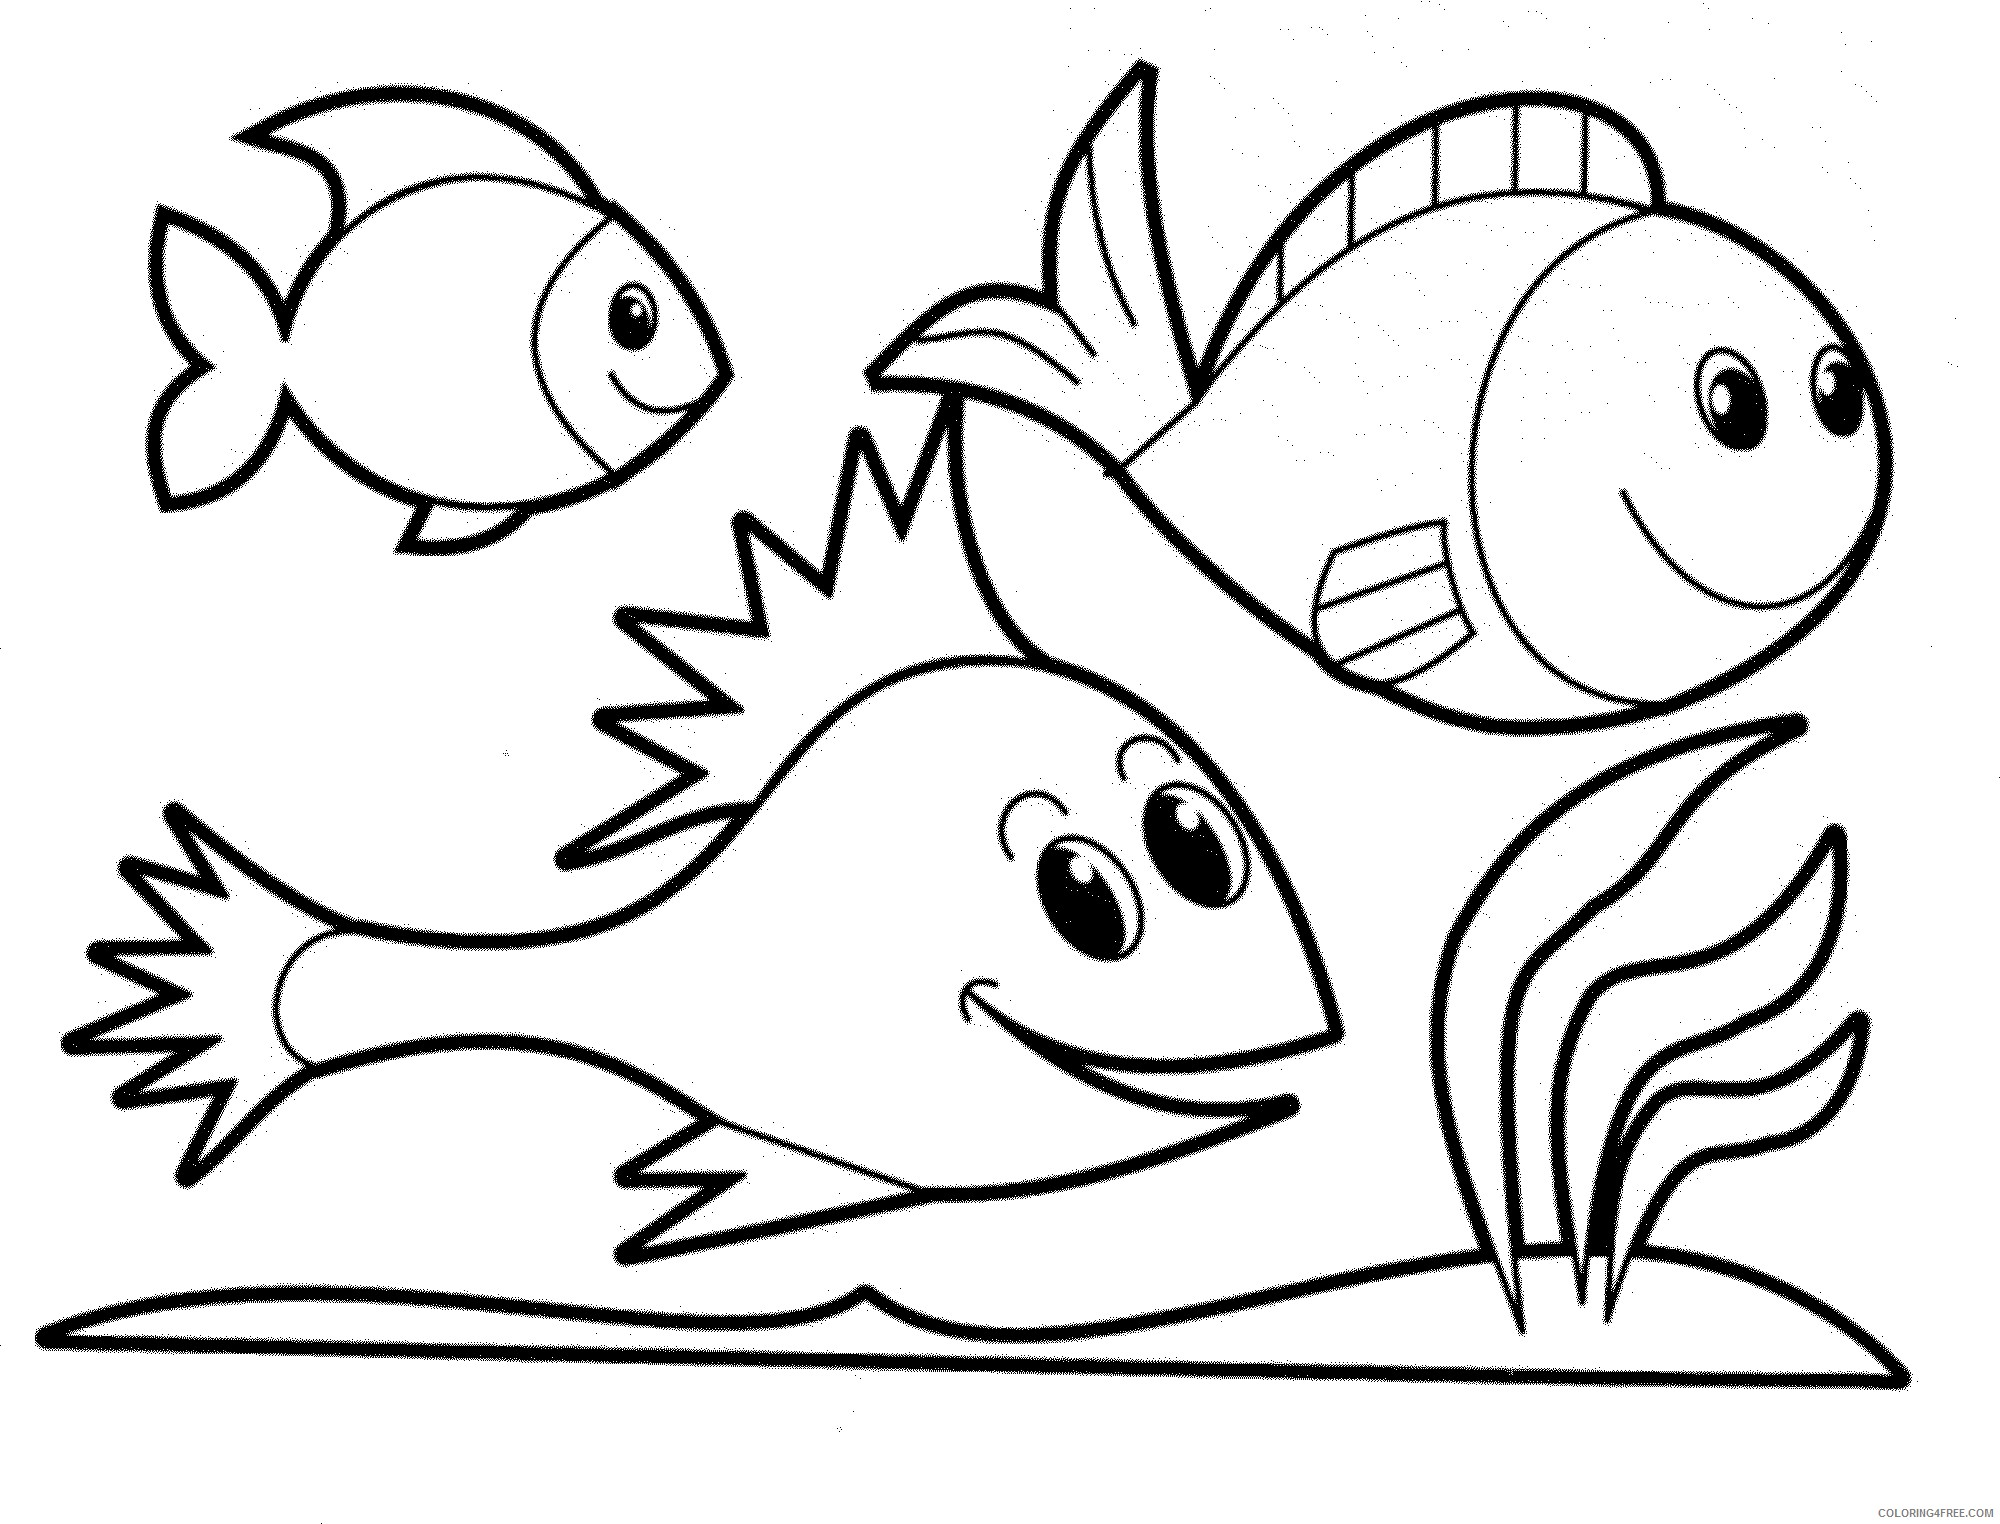 fish coloring pages for kindergarten Coloring4free